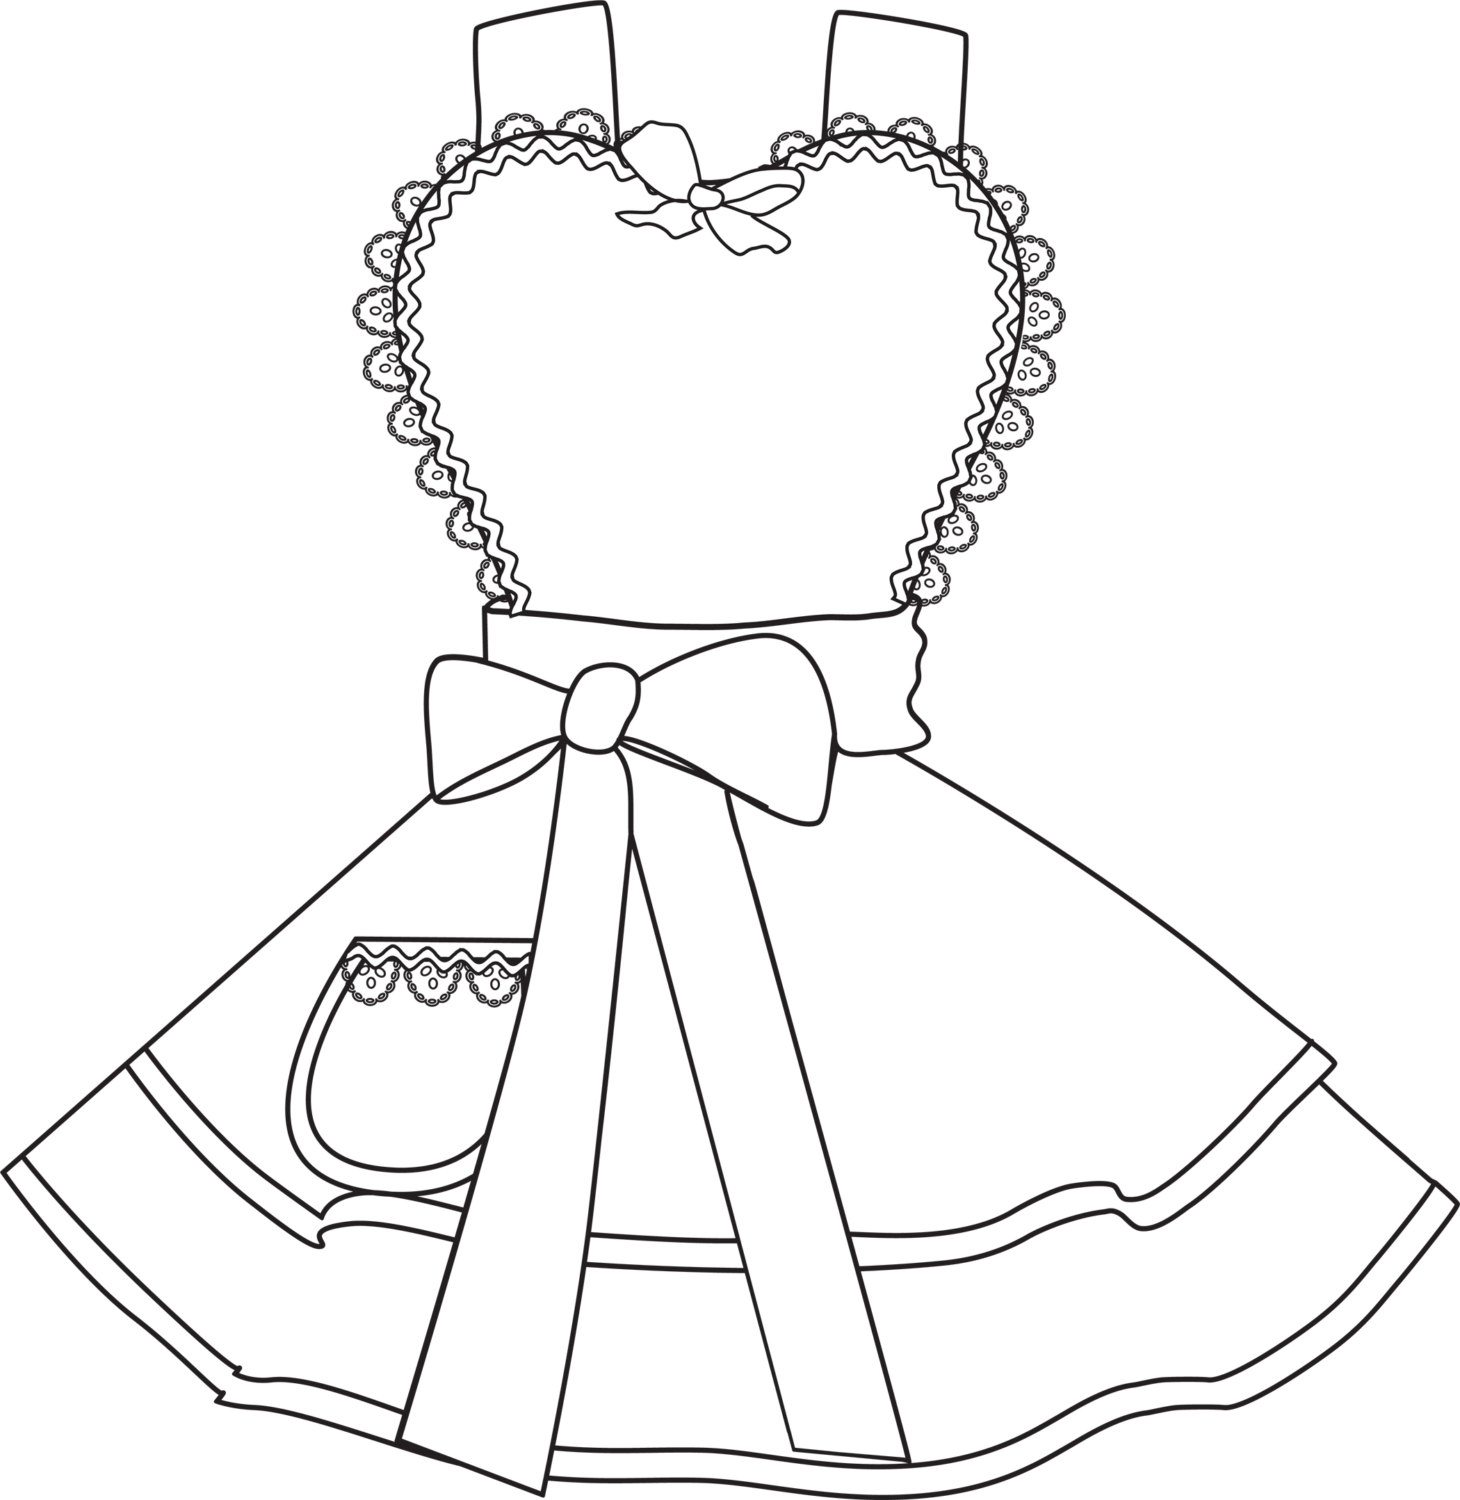 1460x1500 Design Your Own Apron 4 Coloring Pages Digital Instant Download